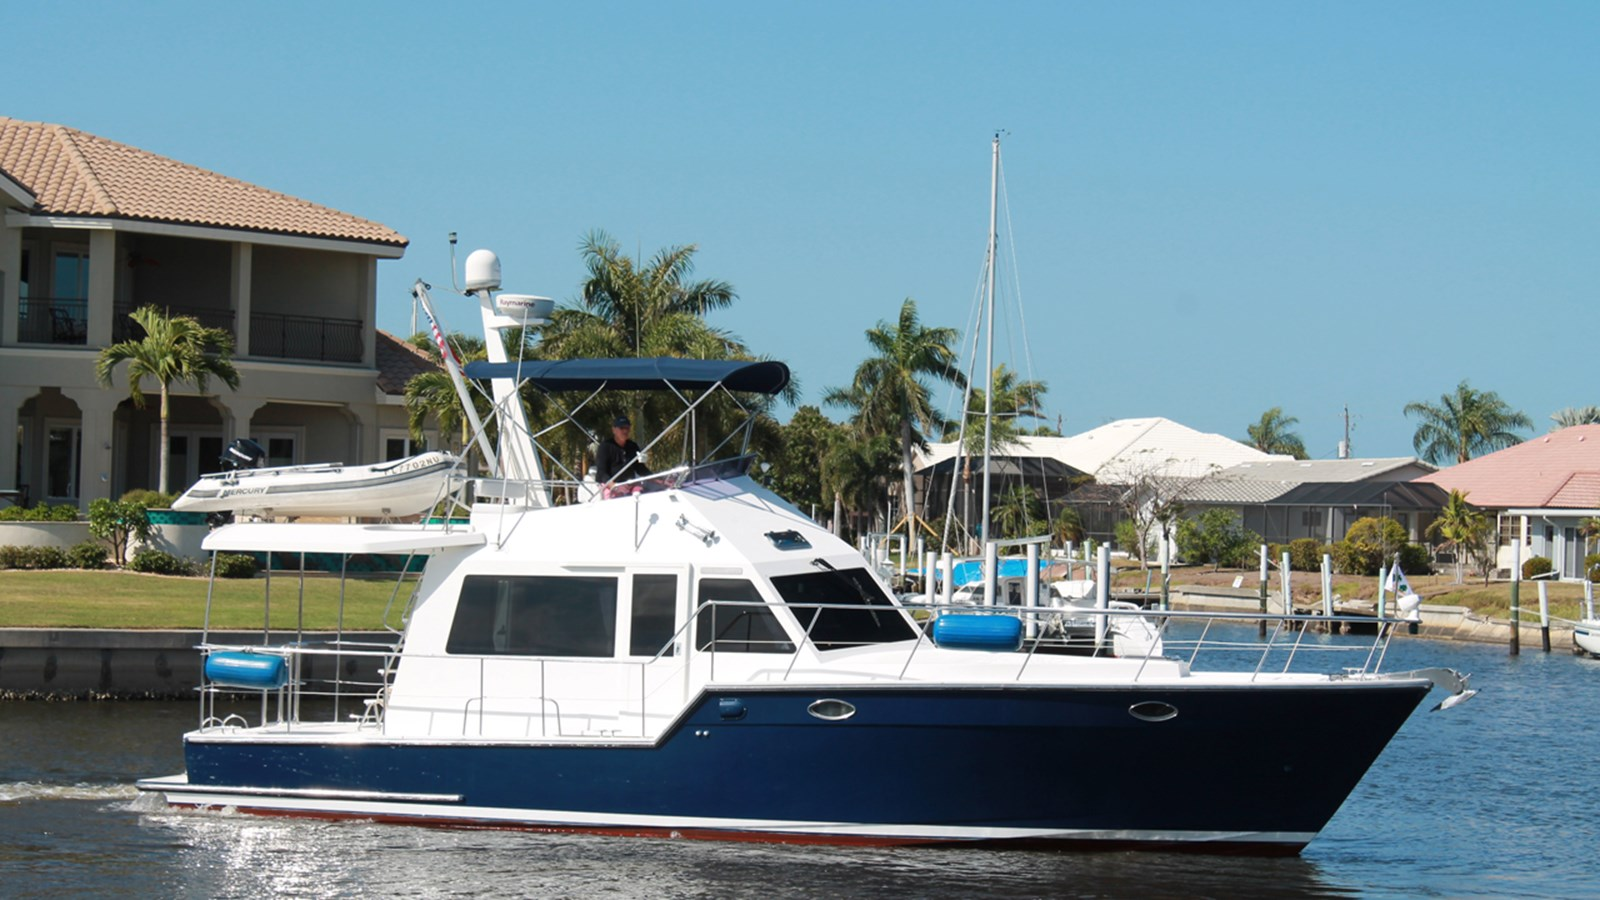 2008 ISLAND PILOT 435 Crossover Trawler For Sale